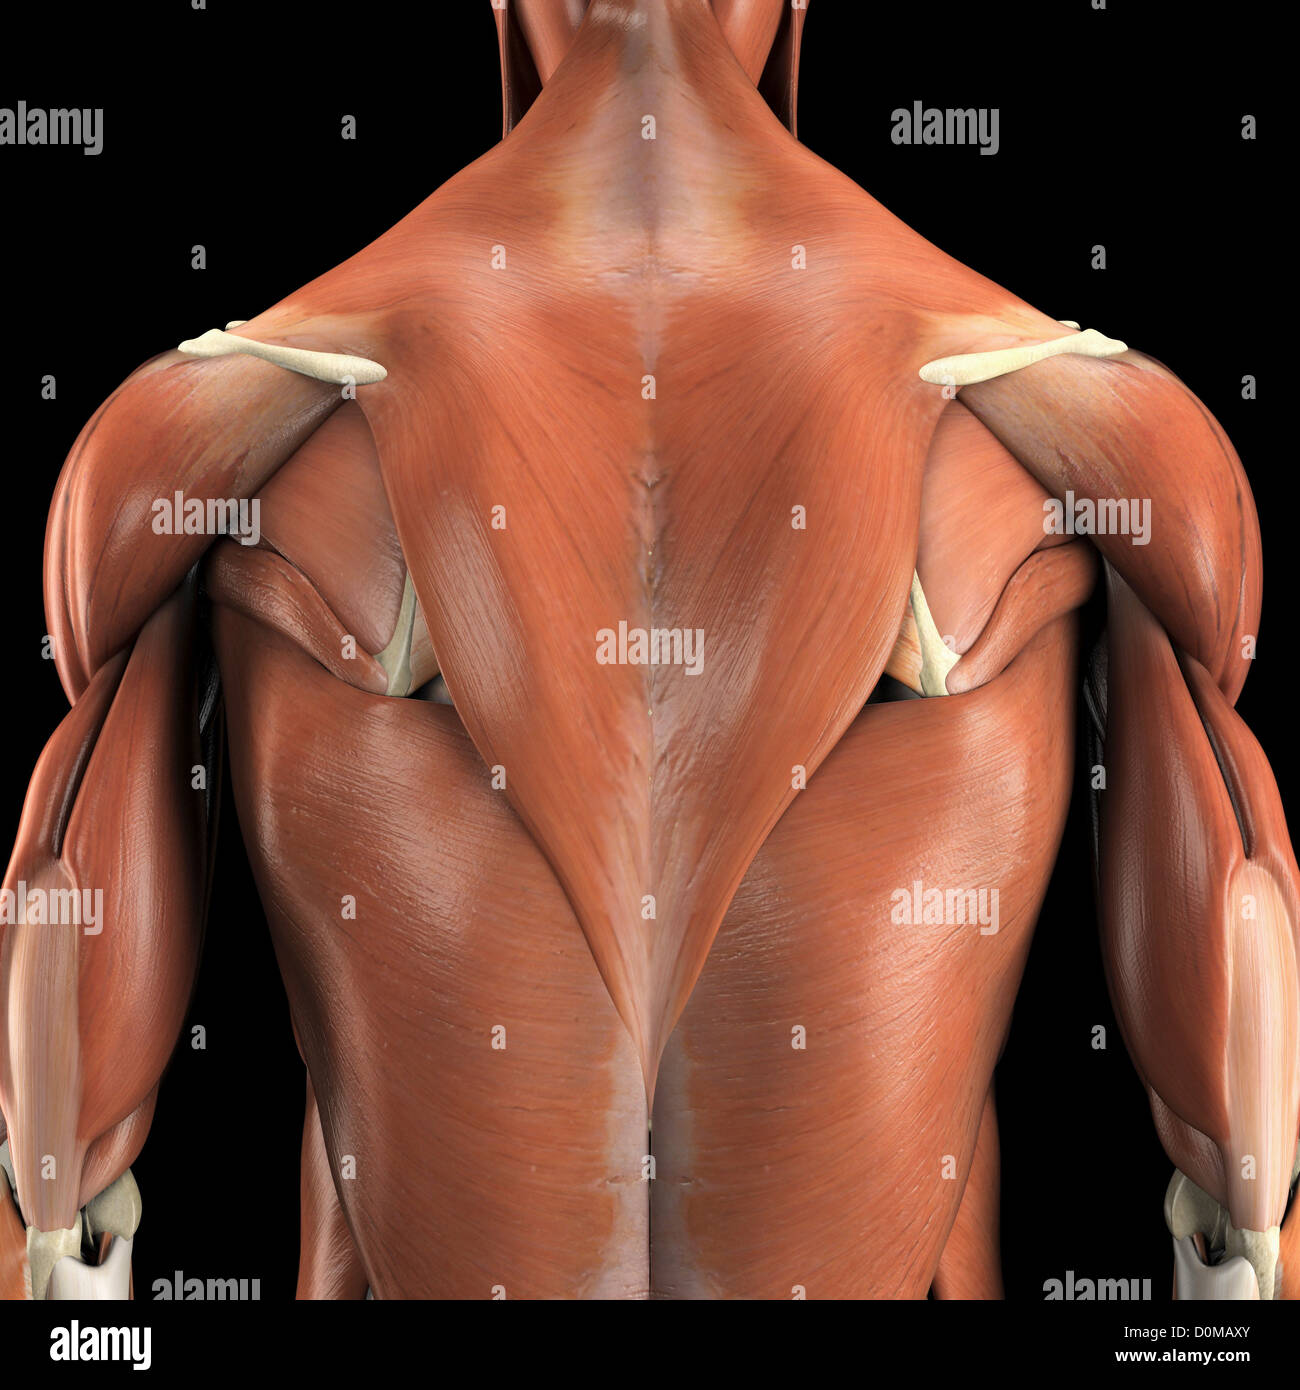 Anatomical model showing the trapezius and latissimus dorsi muscles ...